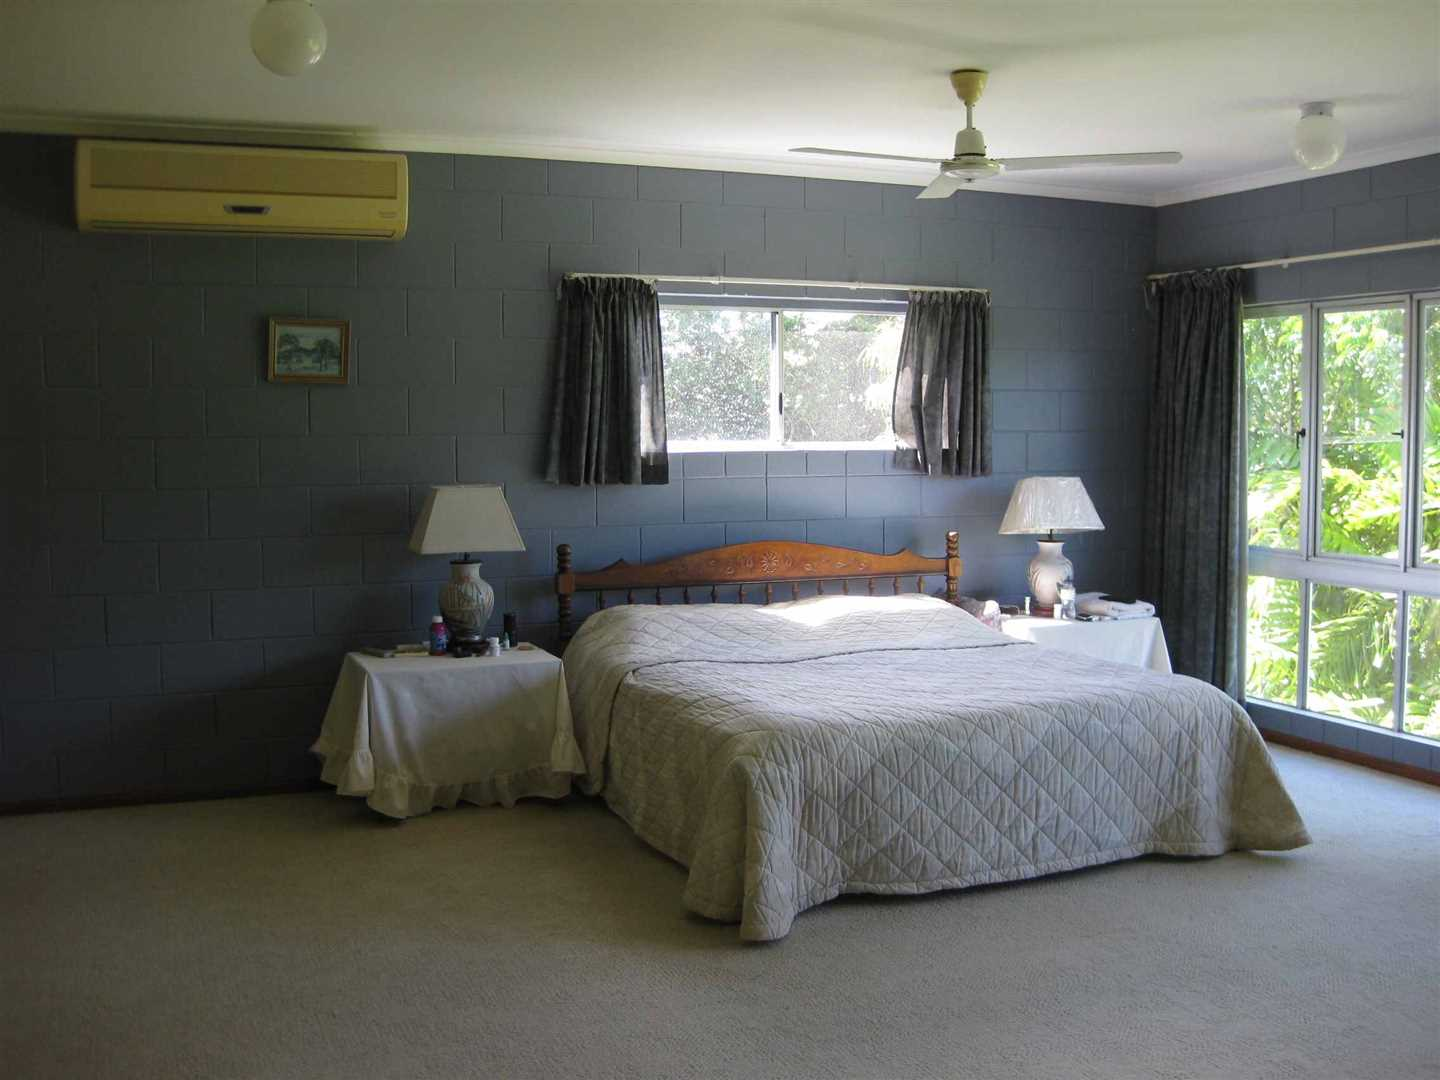 Inside view of part of home showing part of the main bedroom, photo 1